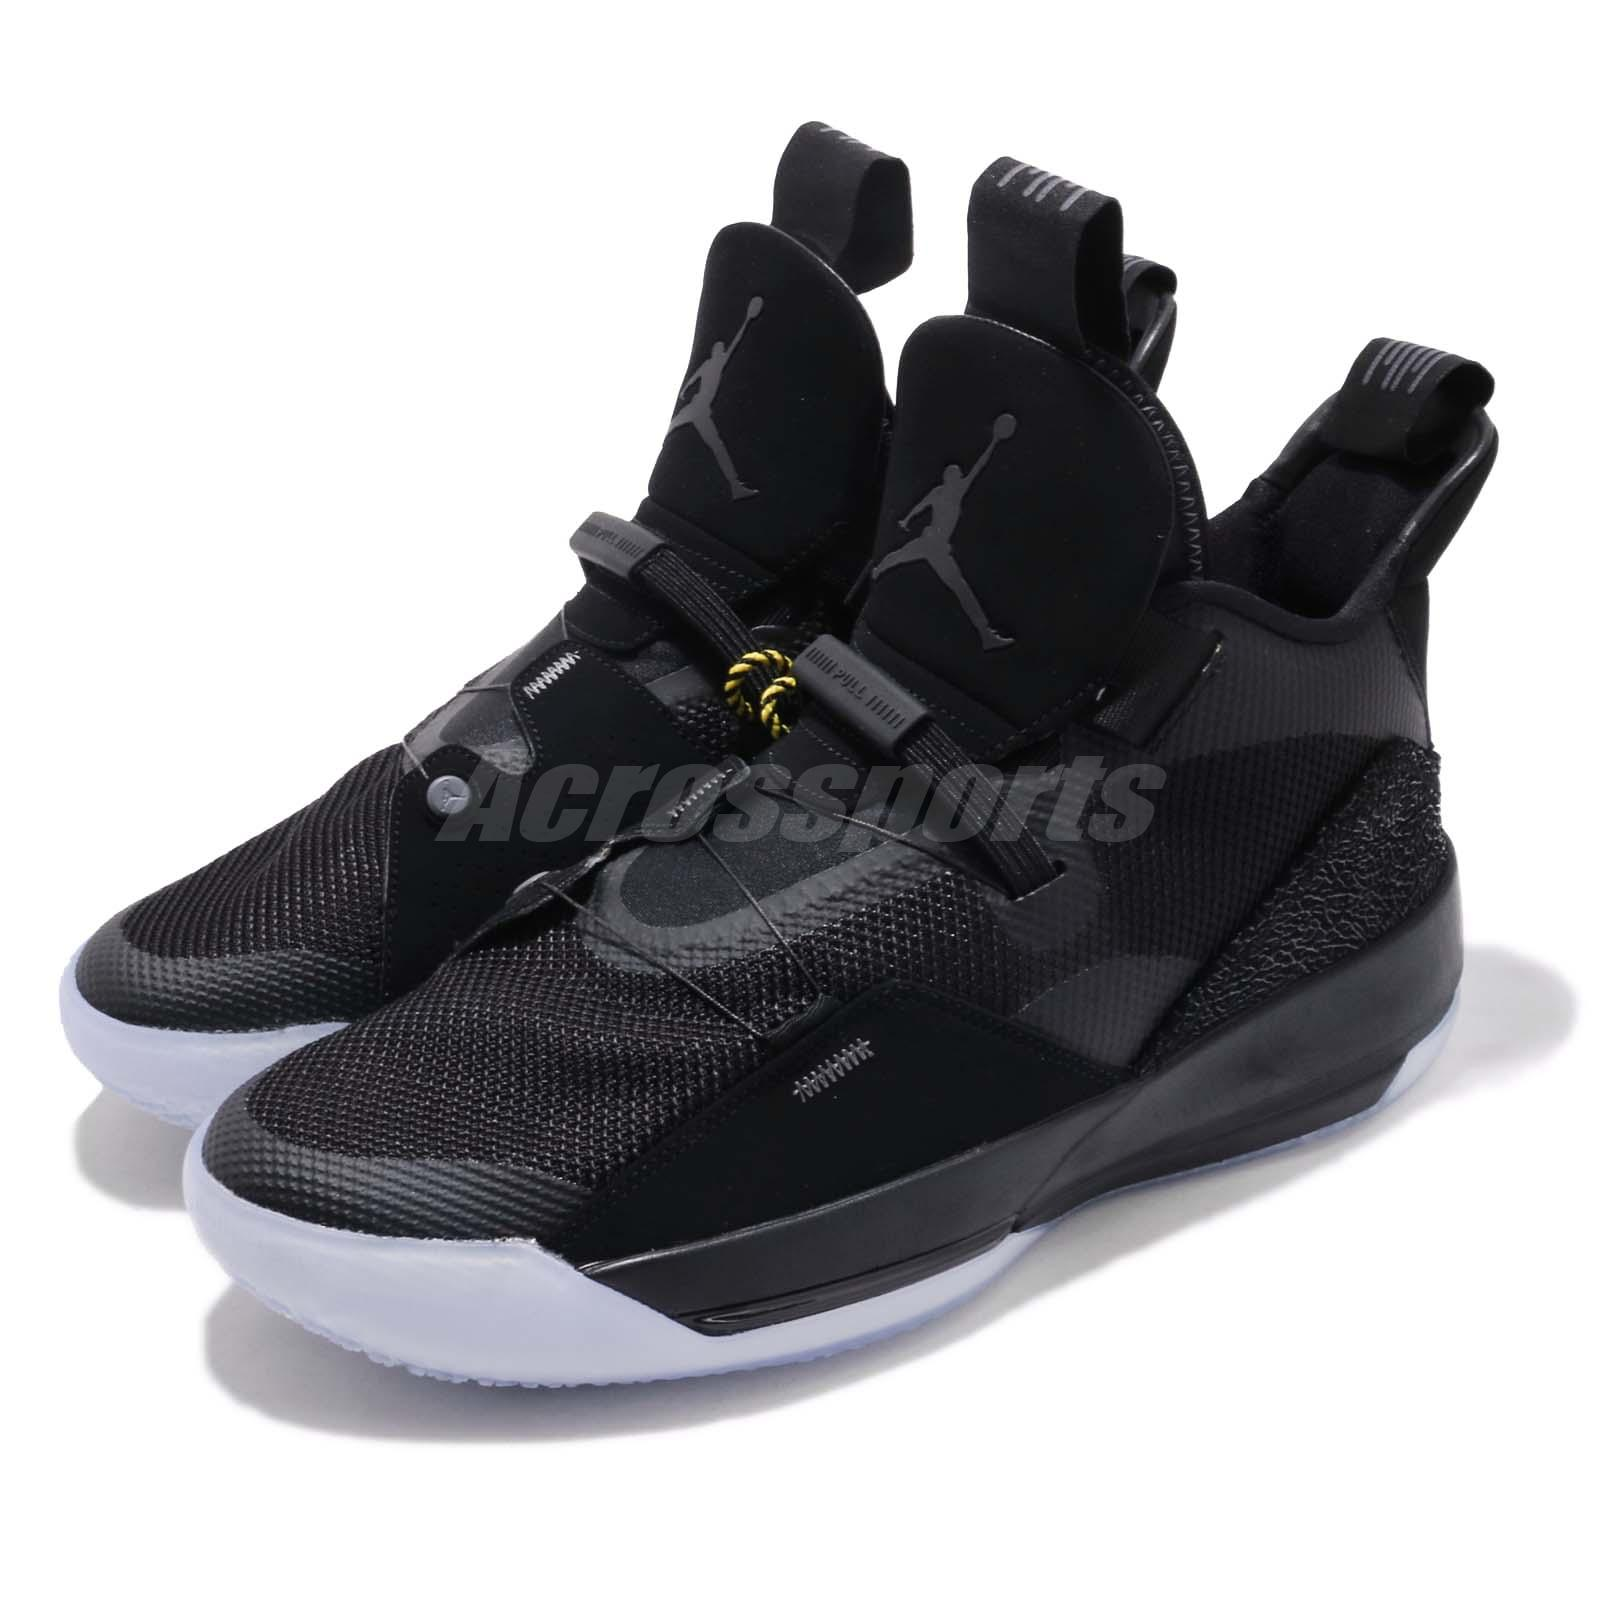 a0a880c5eef Details about Nike Air Jordan XXXIII PF 33 Blackout Fastfit Mens Basketball  Shoes BV5072-002